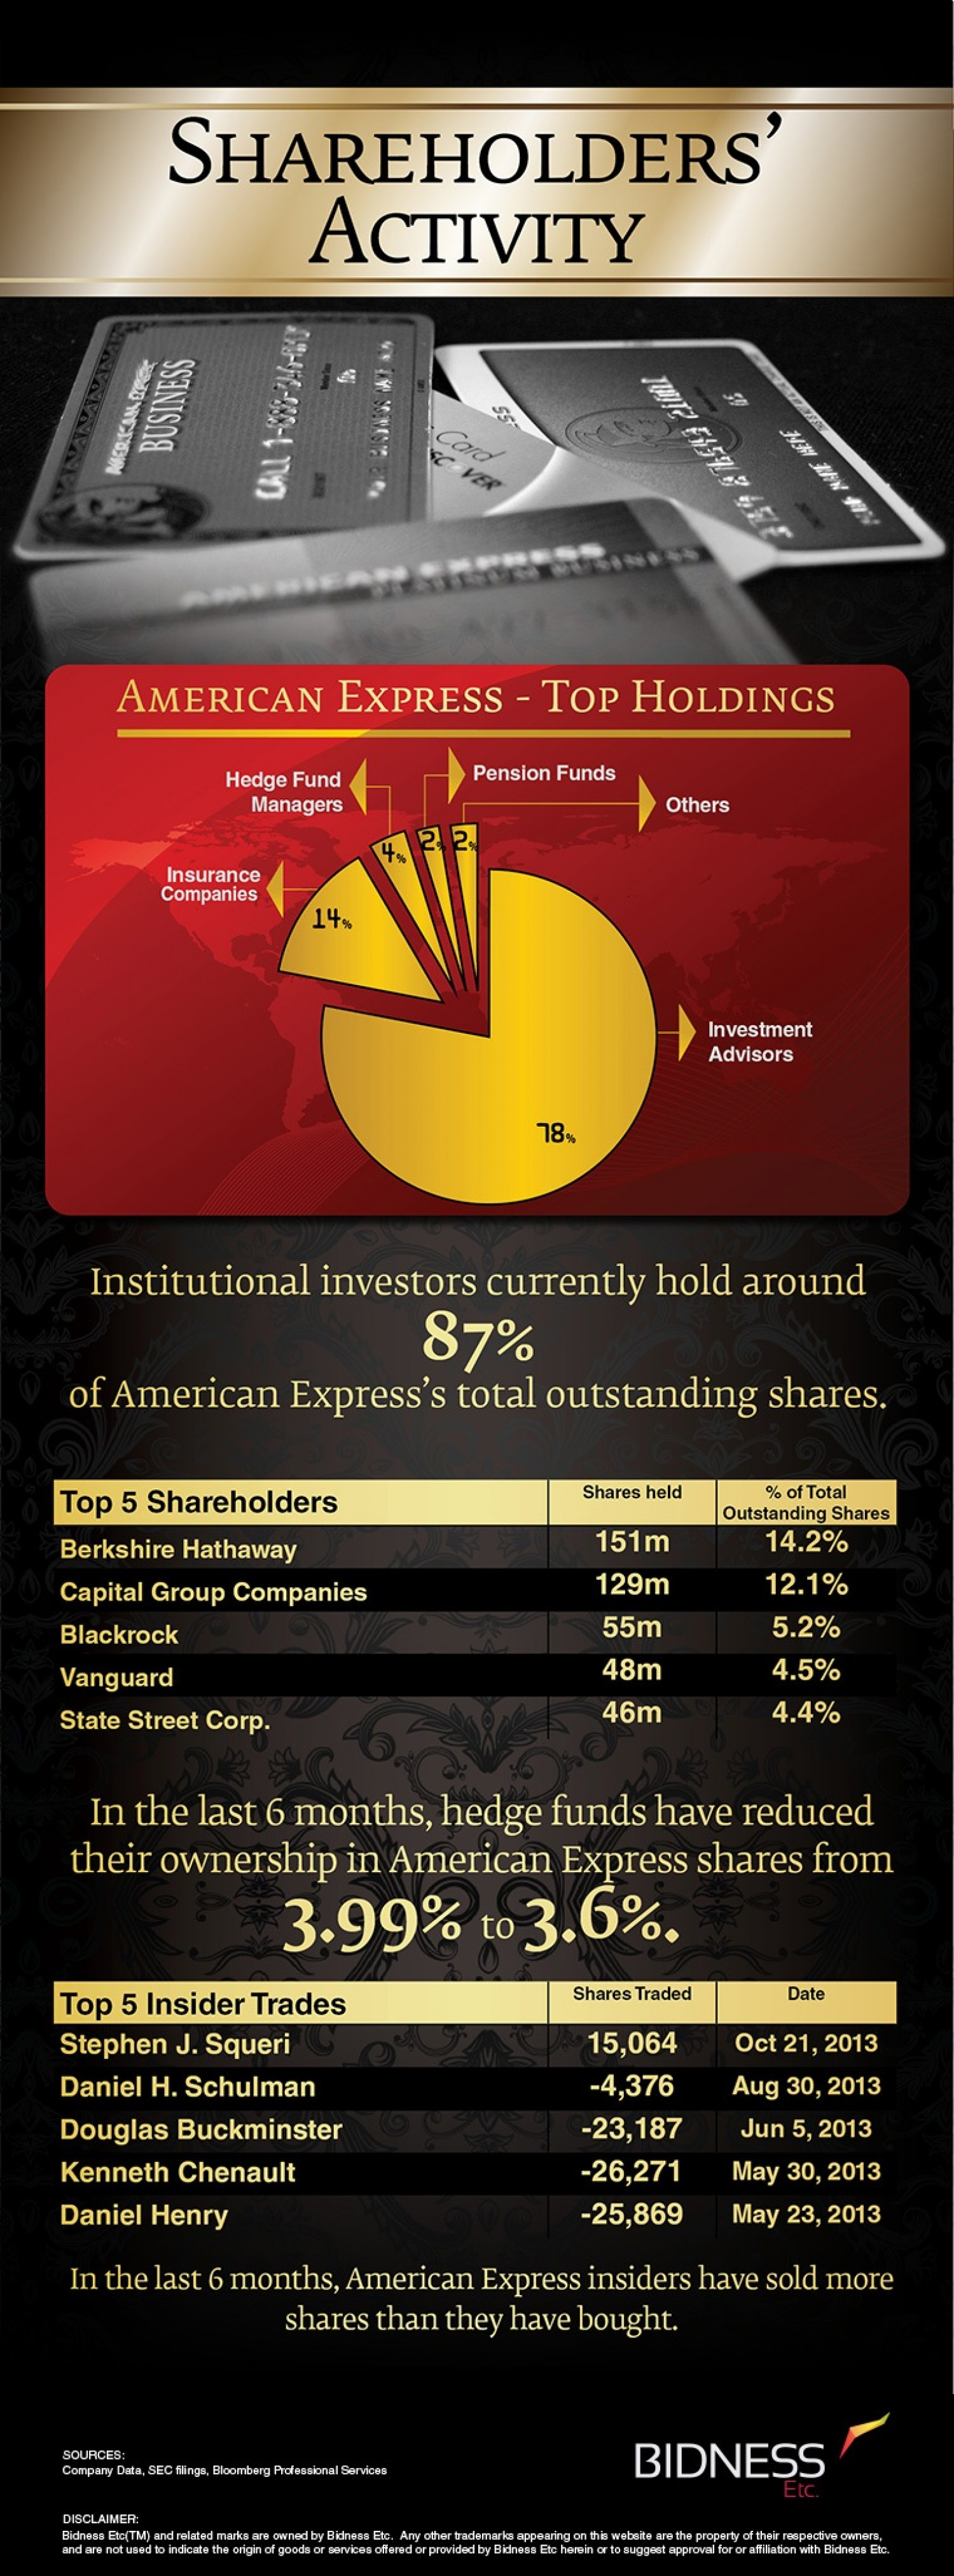 American Express (AXP) Shareholder Activity Infographic